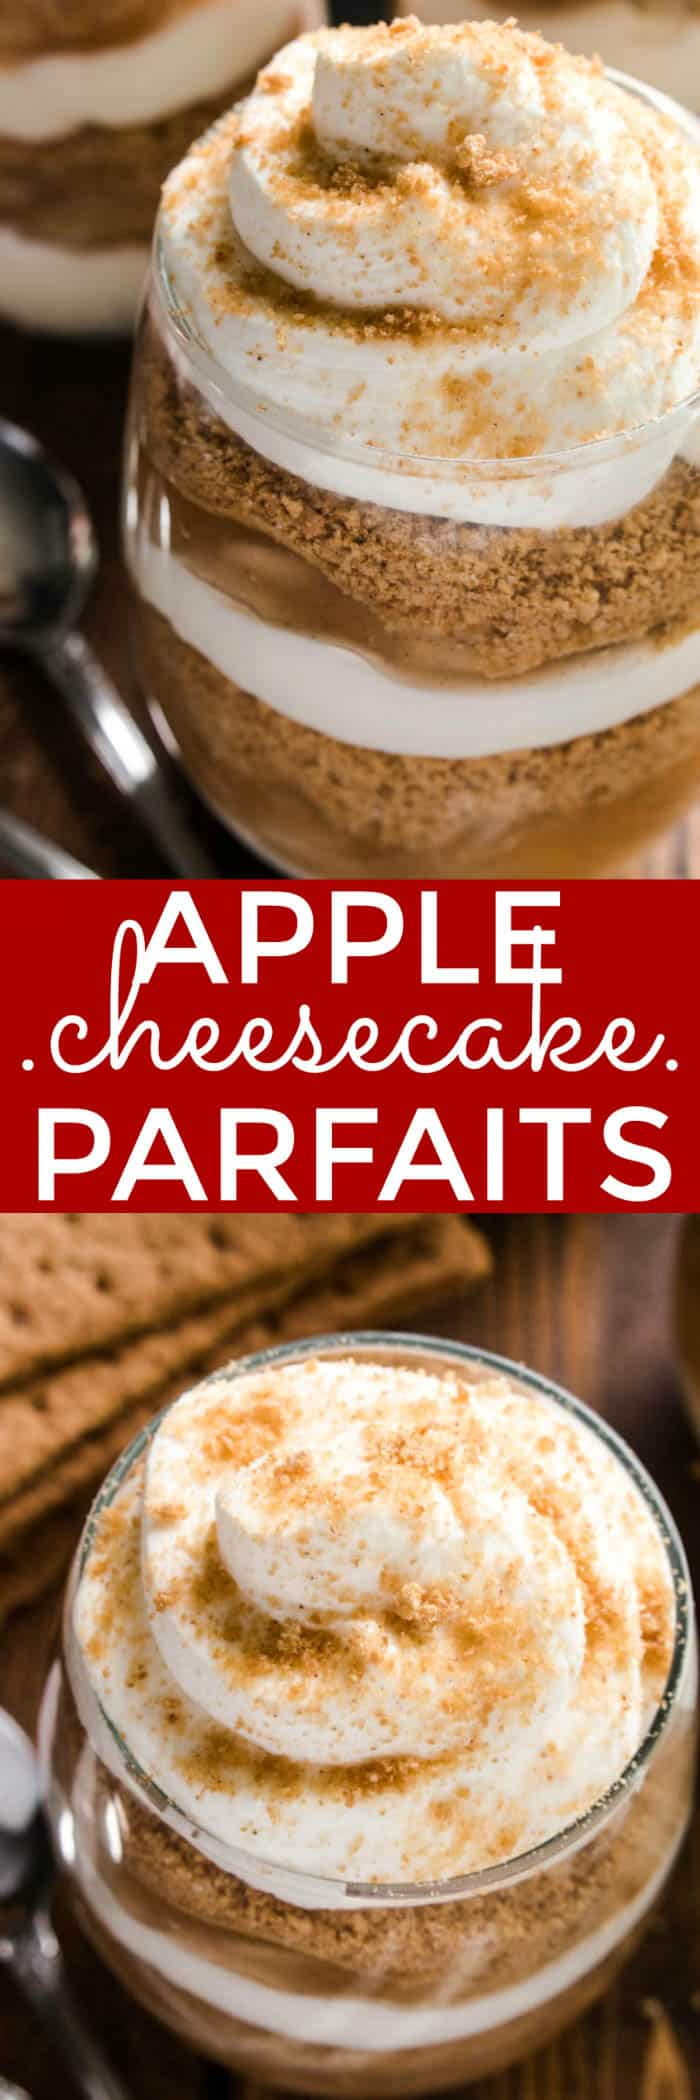 These Apple Cheesecake Parfaits combine two holiday favorites in one delicious no-bake dessert! Made with just five simple ingredients, these parfaits have all the flavors of apple pie, combined with rich, creamy cheesecake and homemade whipped cream. Best of all, they come together in no time at all. Just 10 minutes is all you need for a rich, decadent dessert that's worthy of any holiday celebration. Why choose between cheesecake and pie when you can have both? These Apple Cheesecake Parfaits are the perfect pairing...and guaranteed to be a holiday hit!